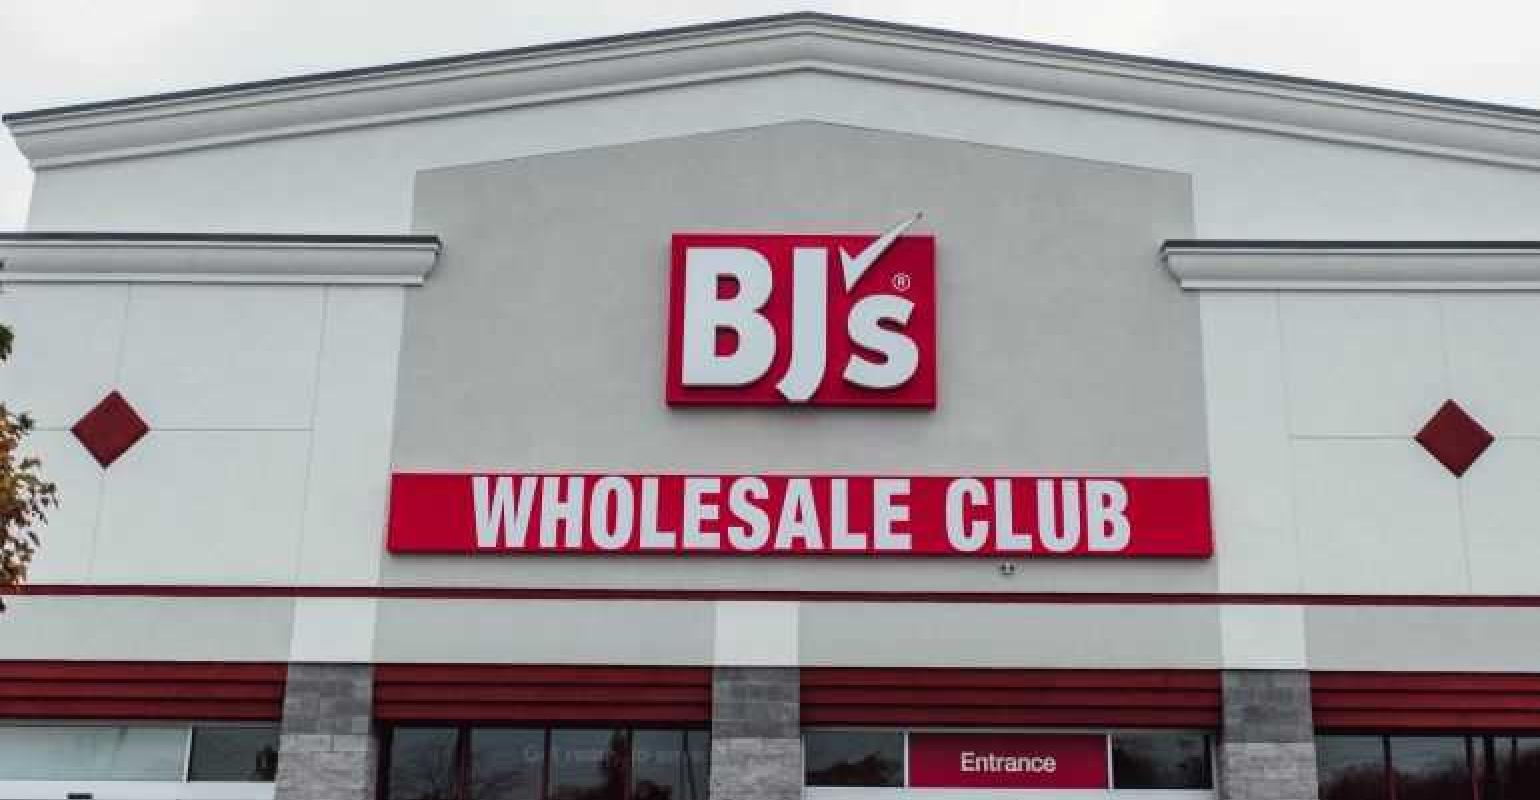 Sales inch up in Q3 at BJ's Wholesale Club | Supermarket News